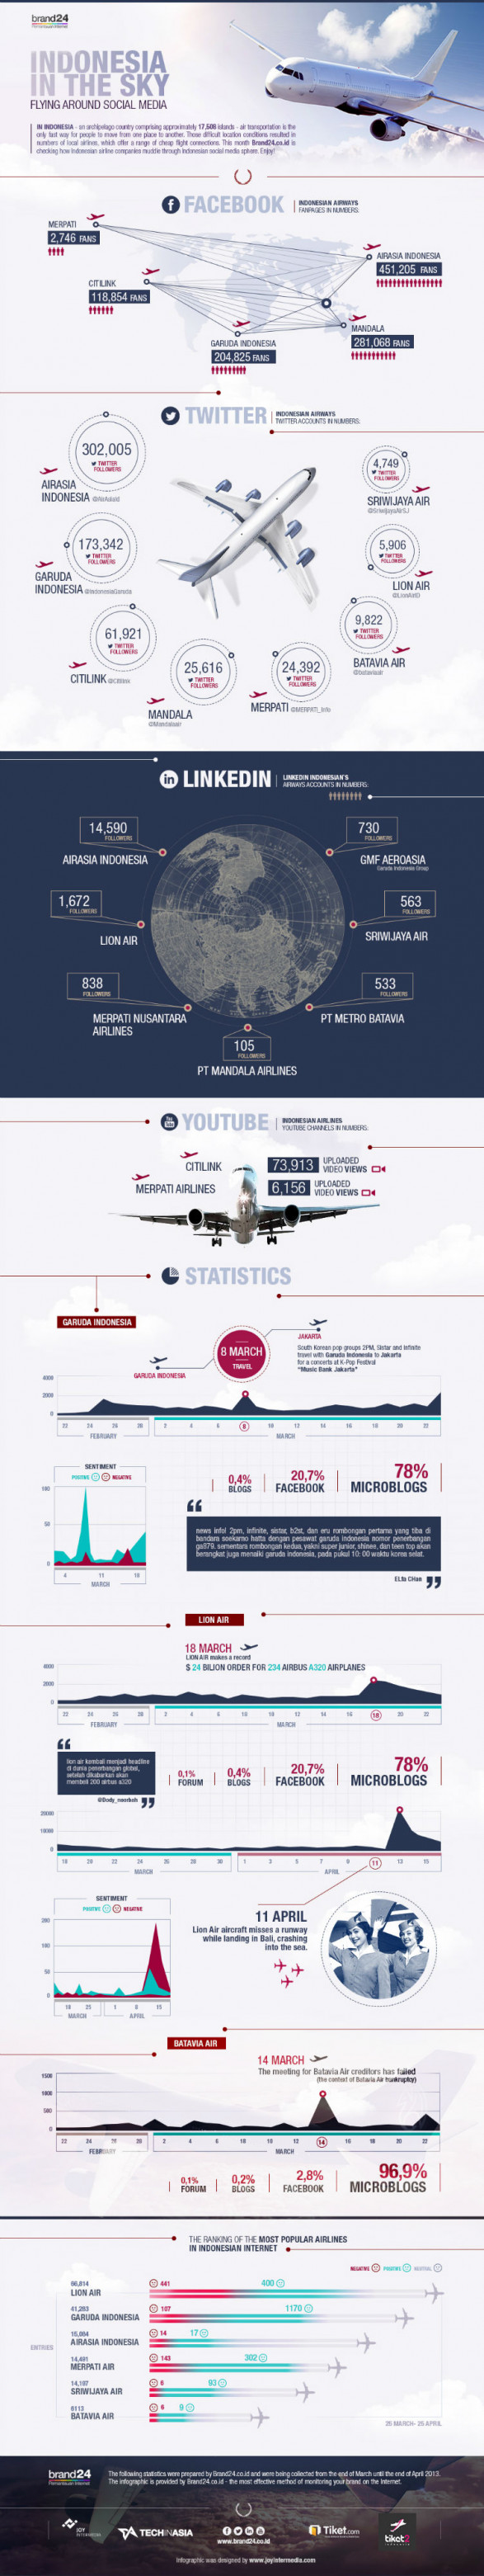 Indonesia Airlines Sky High On Social Media [INFOGRAPHIC]